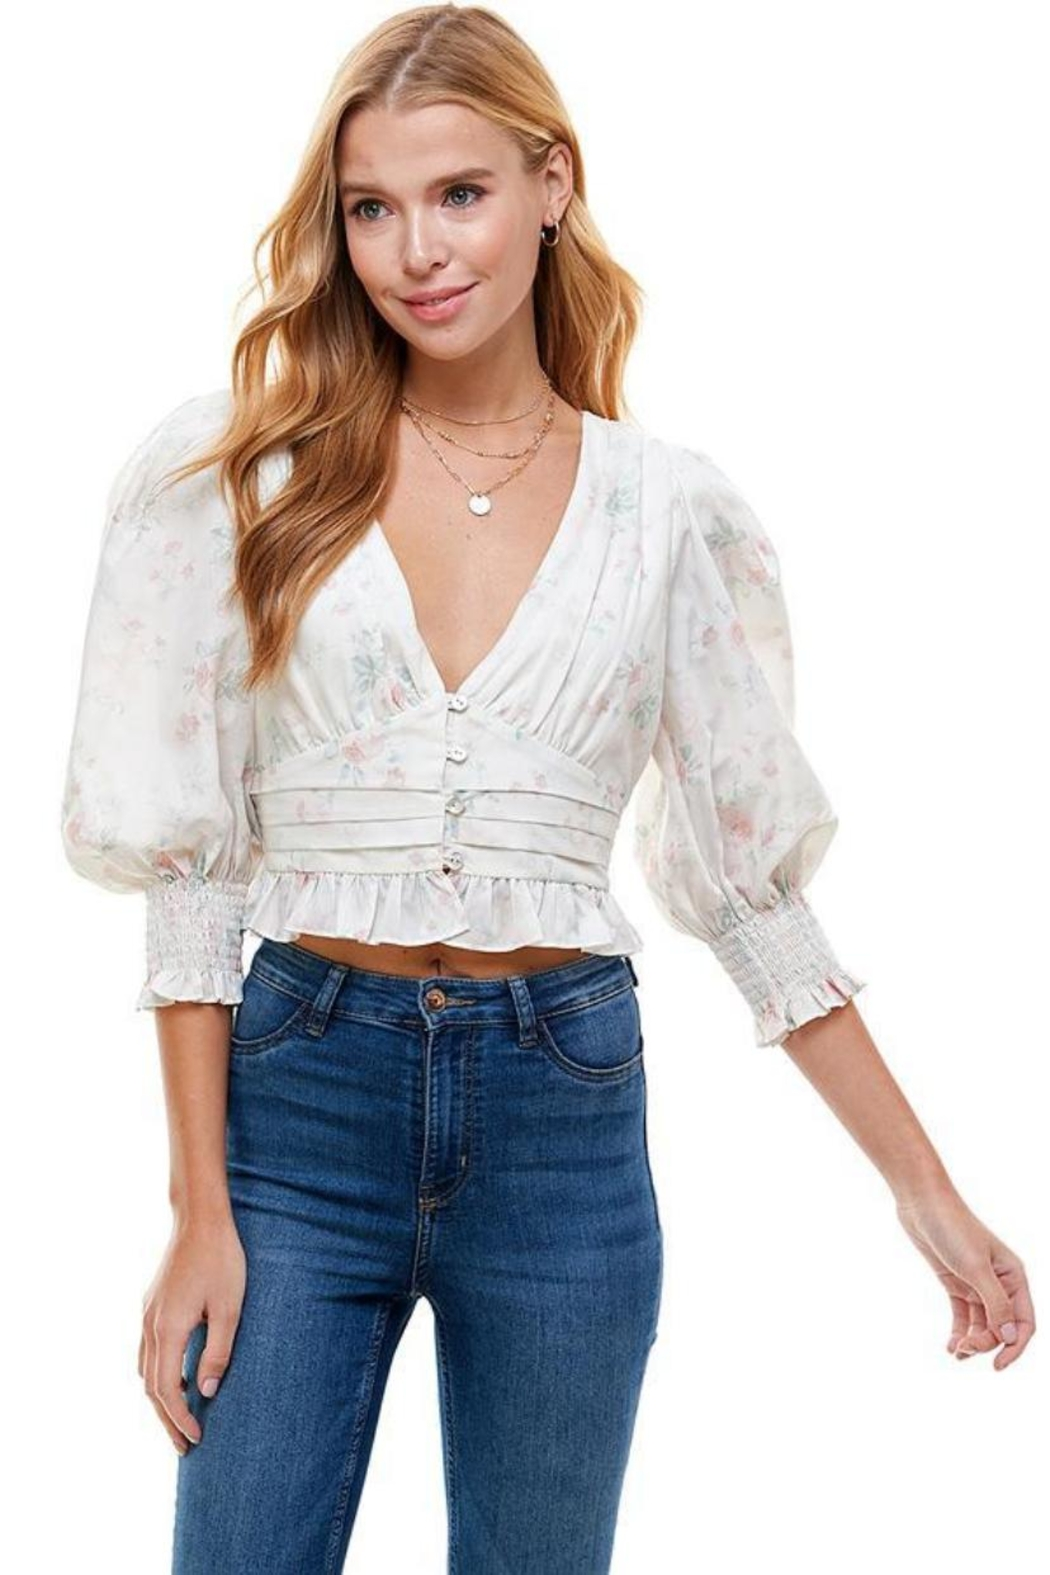 ACOA V-Neck Floral Top - Main Image